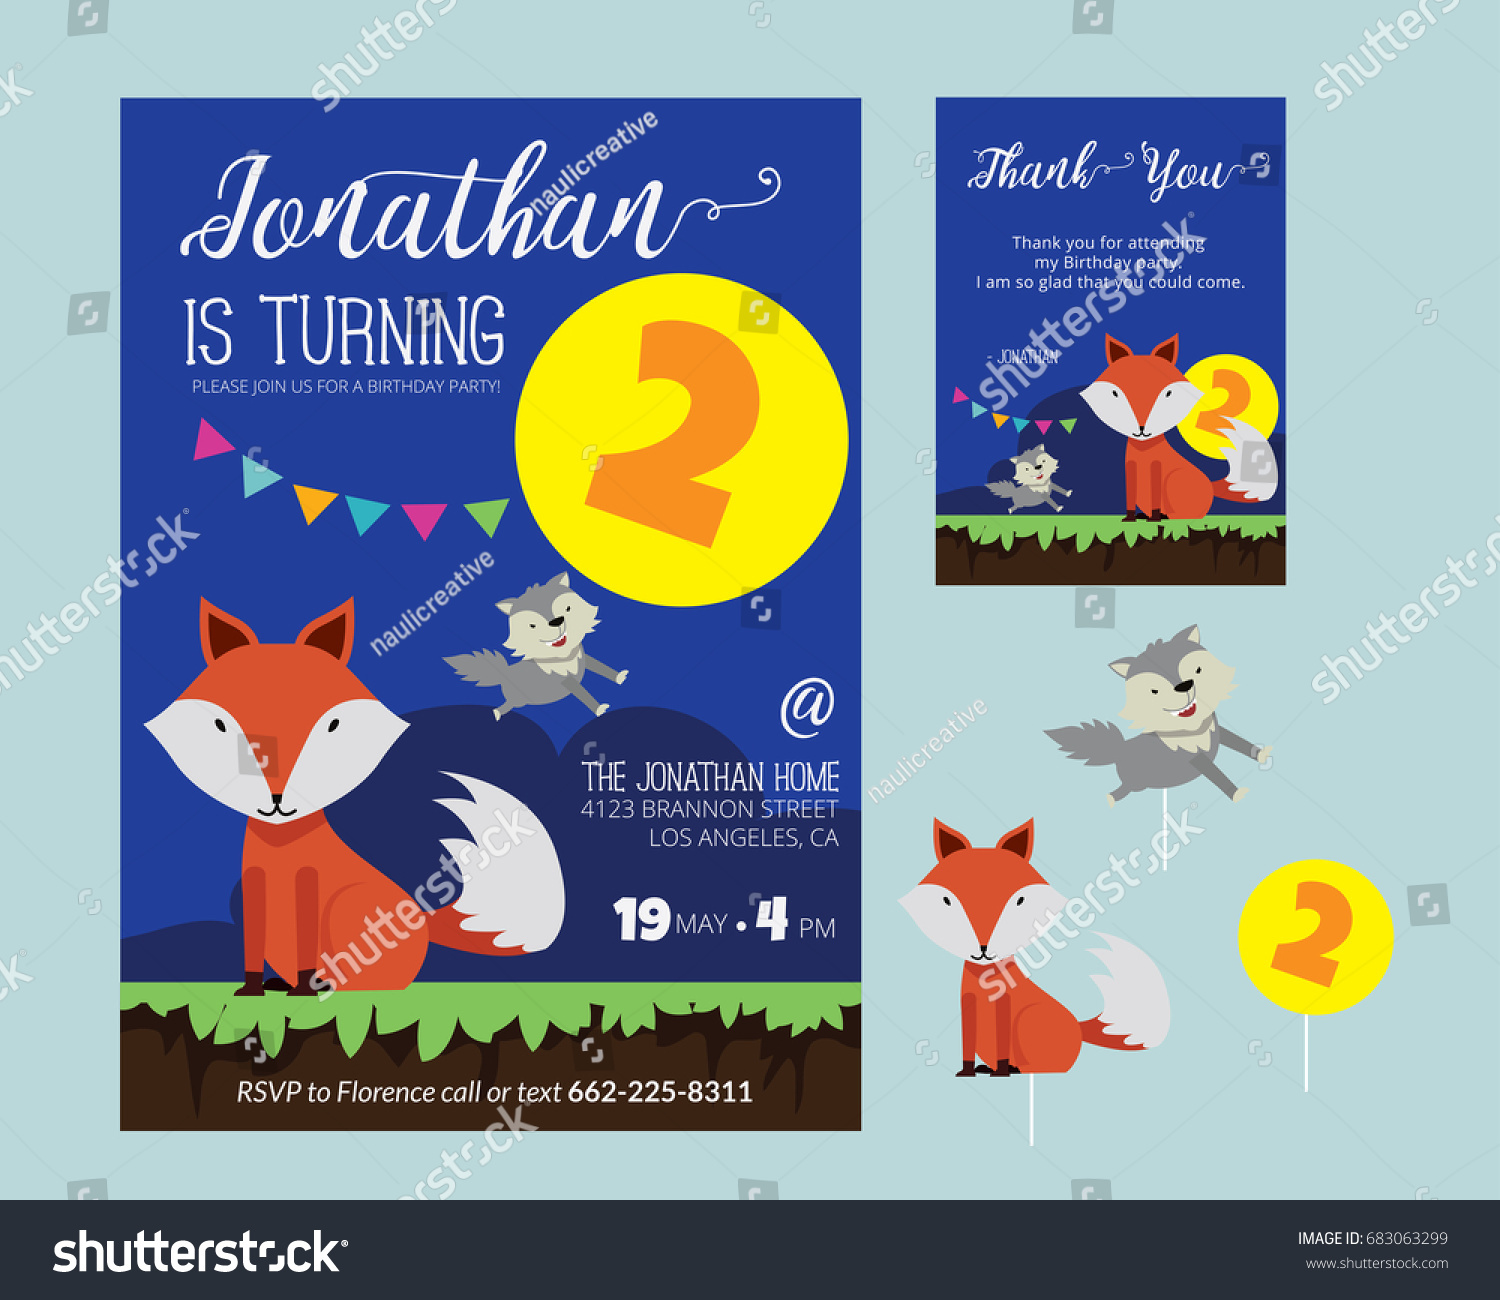 Cute Animal Theme Birthday Party Invitation Stock Vector 683063299 ...